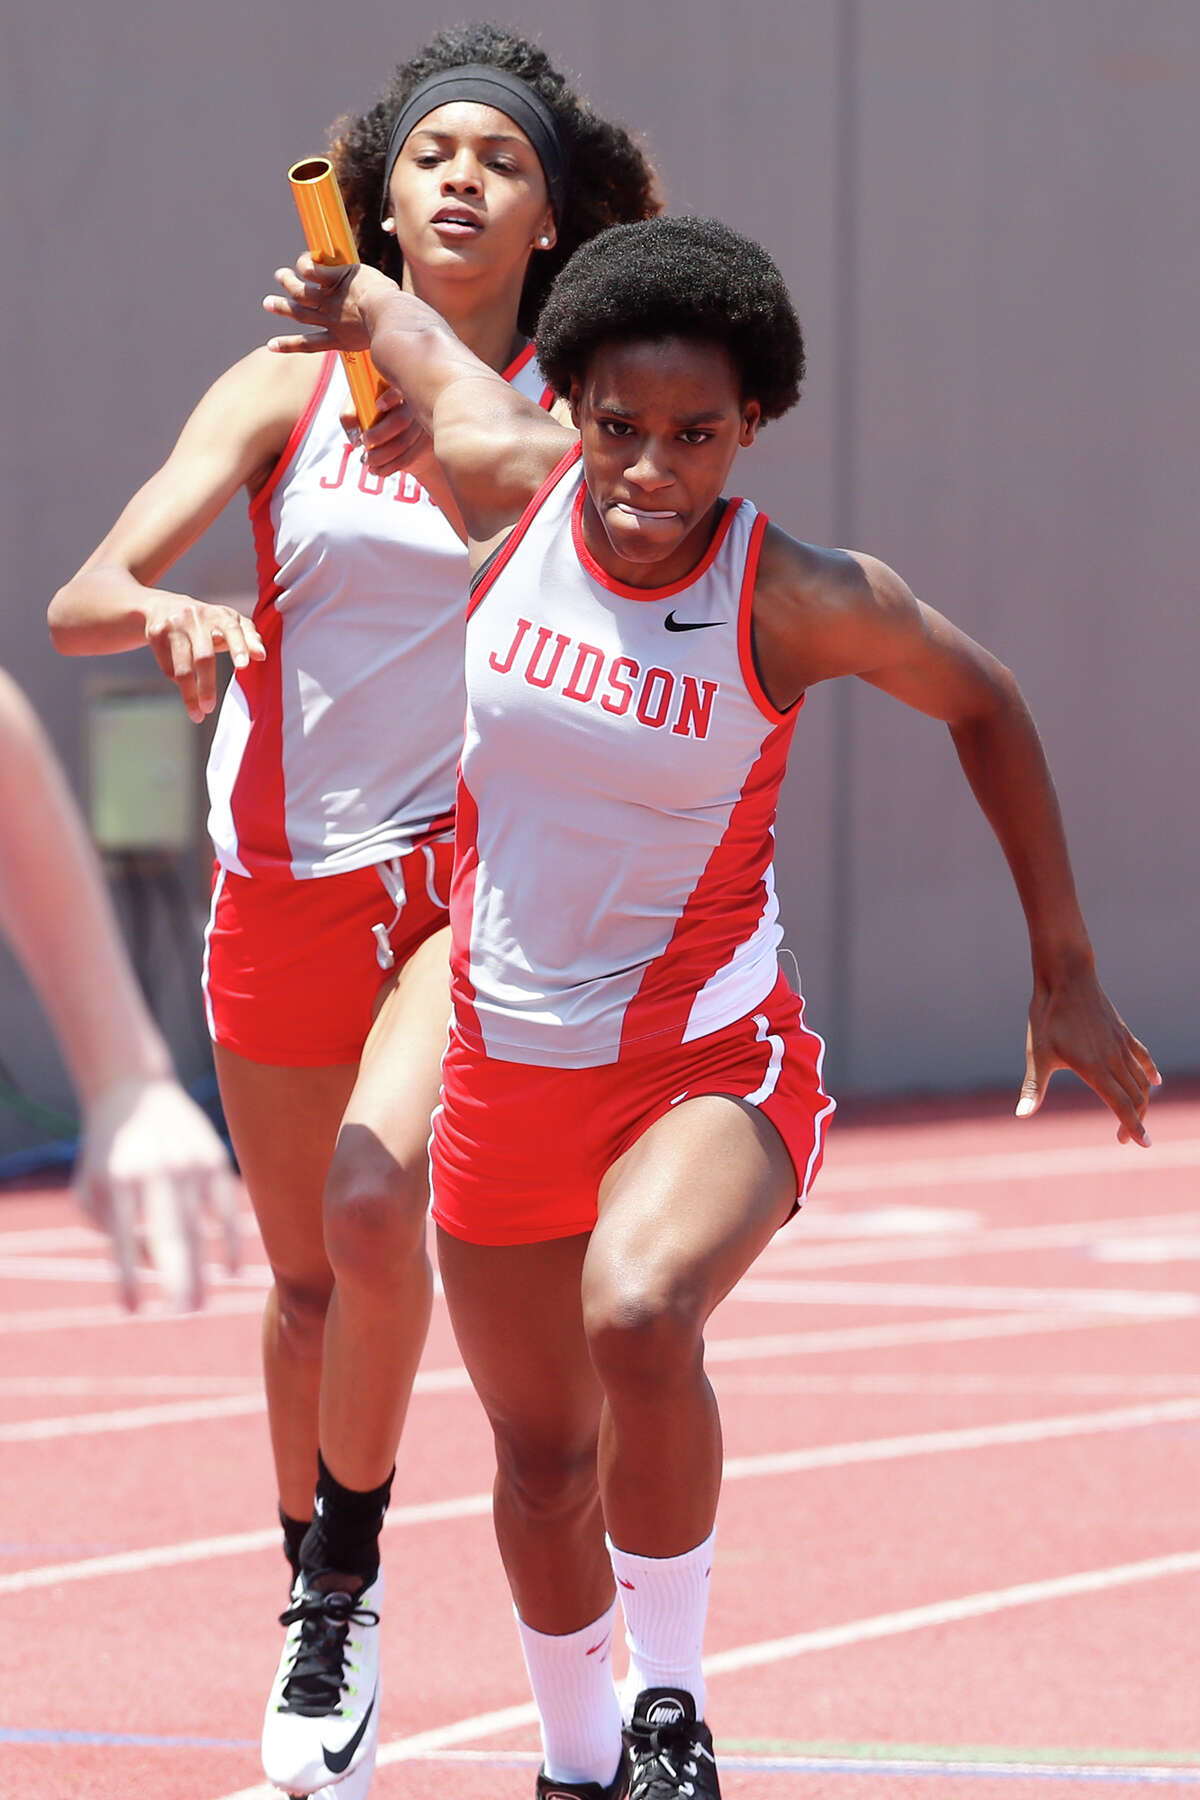 Judson's Kiara Pickens (right) takes the handoff from Mariah Kuykendoll to start the third leg of the Class 6A 800-meter relay during the Region IV-5A and Region IV-6A track and field meet at Alamo Stadium on May 2, 2015. Judson won the event with a time of 1 minute, 37.38 seconds, beating its Regional record set in 2014.